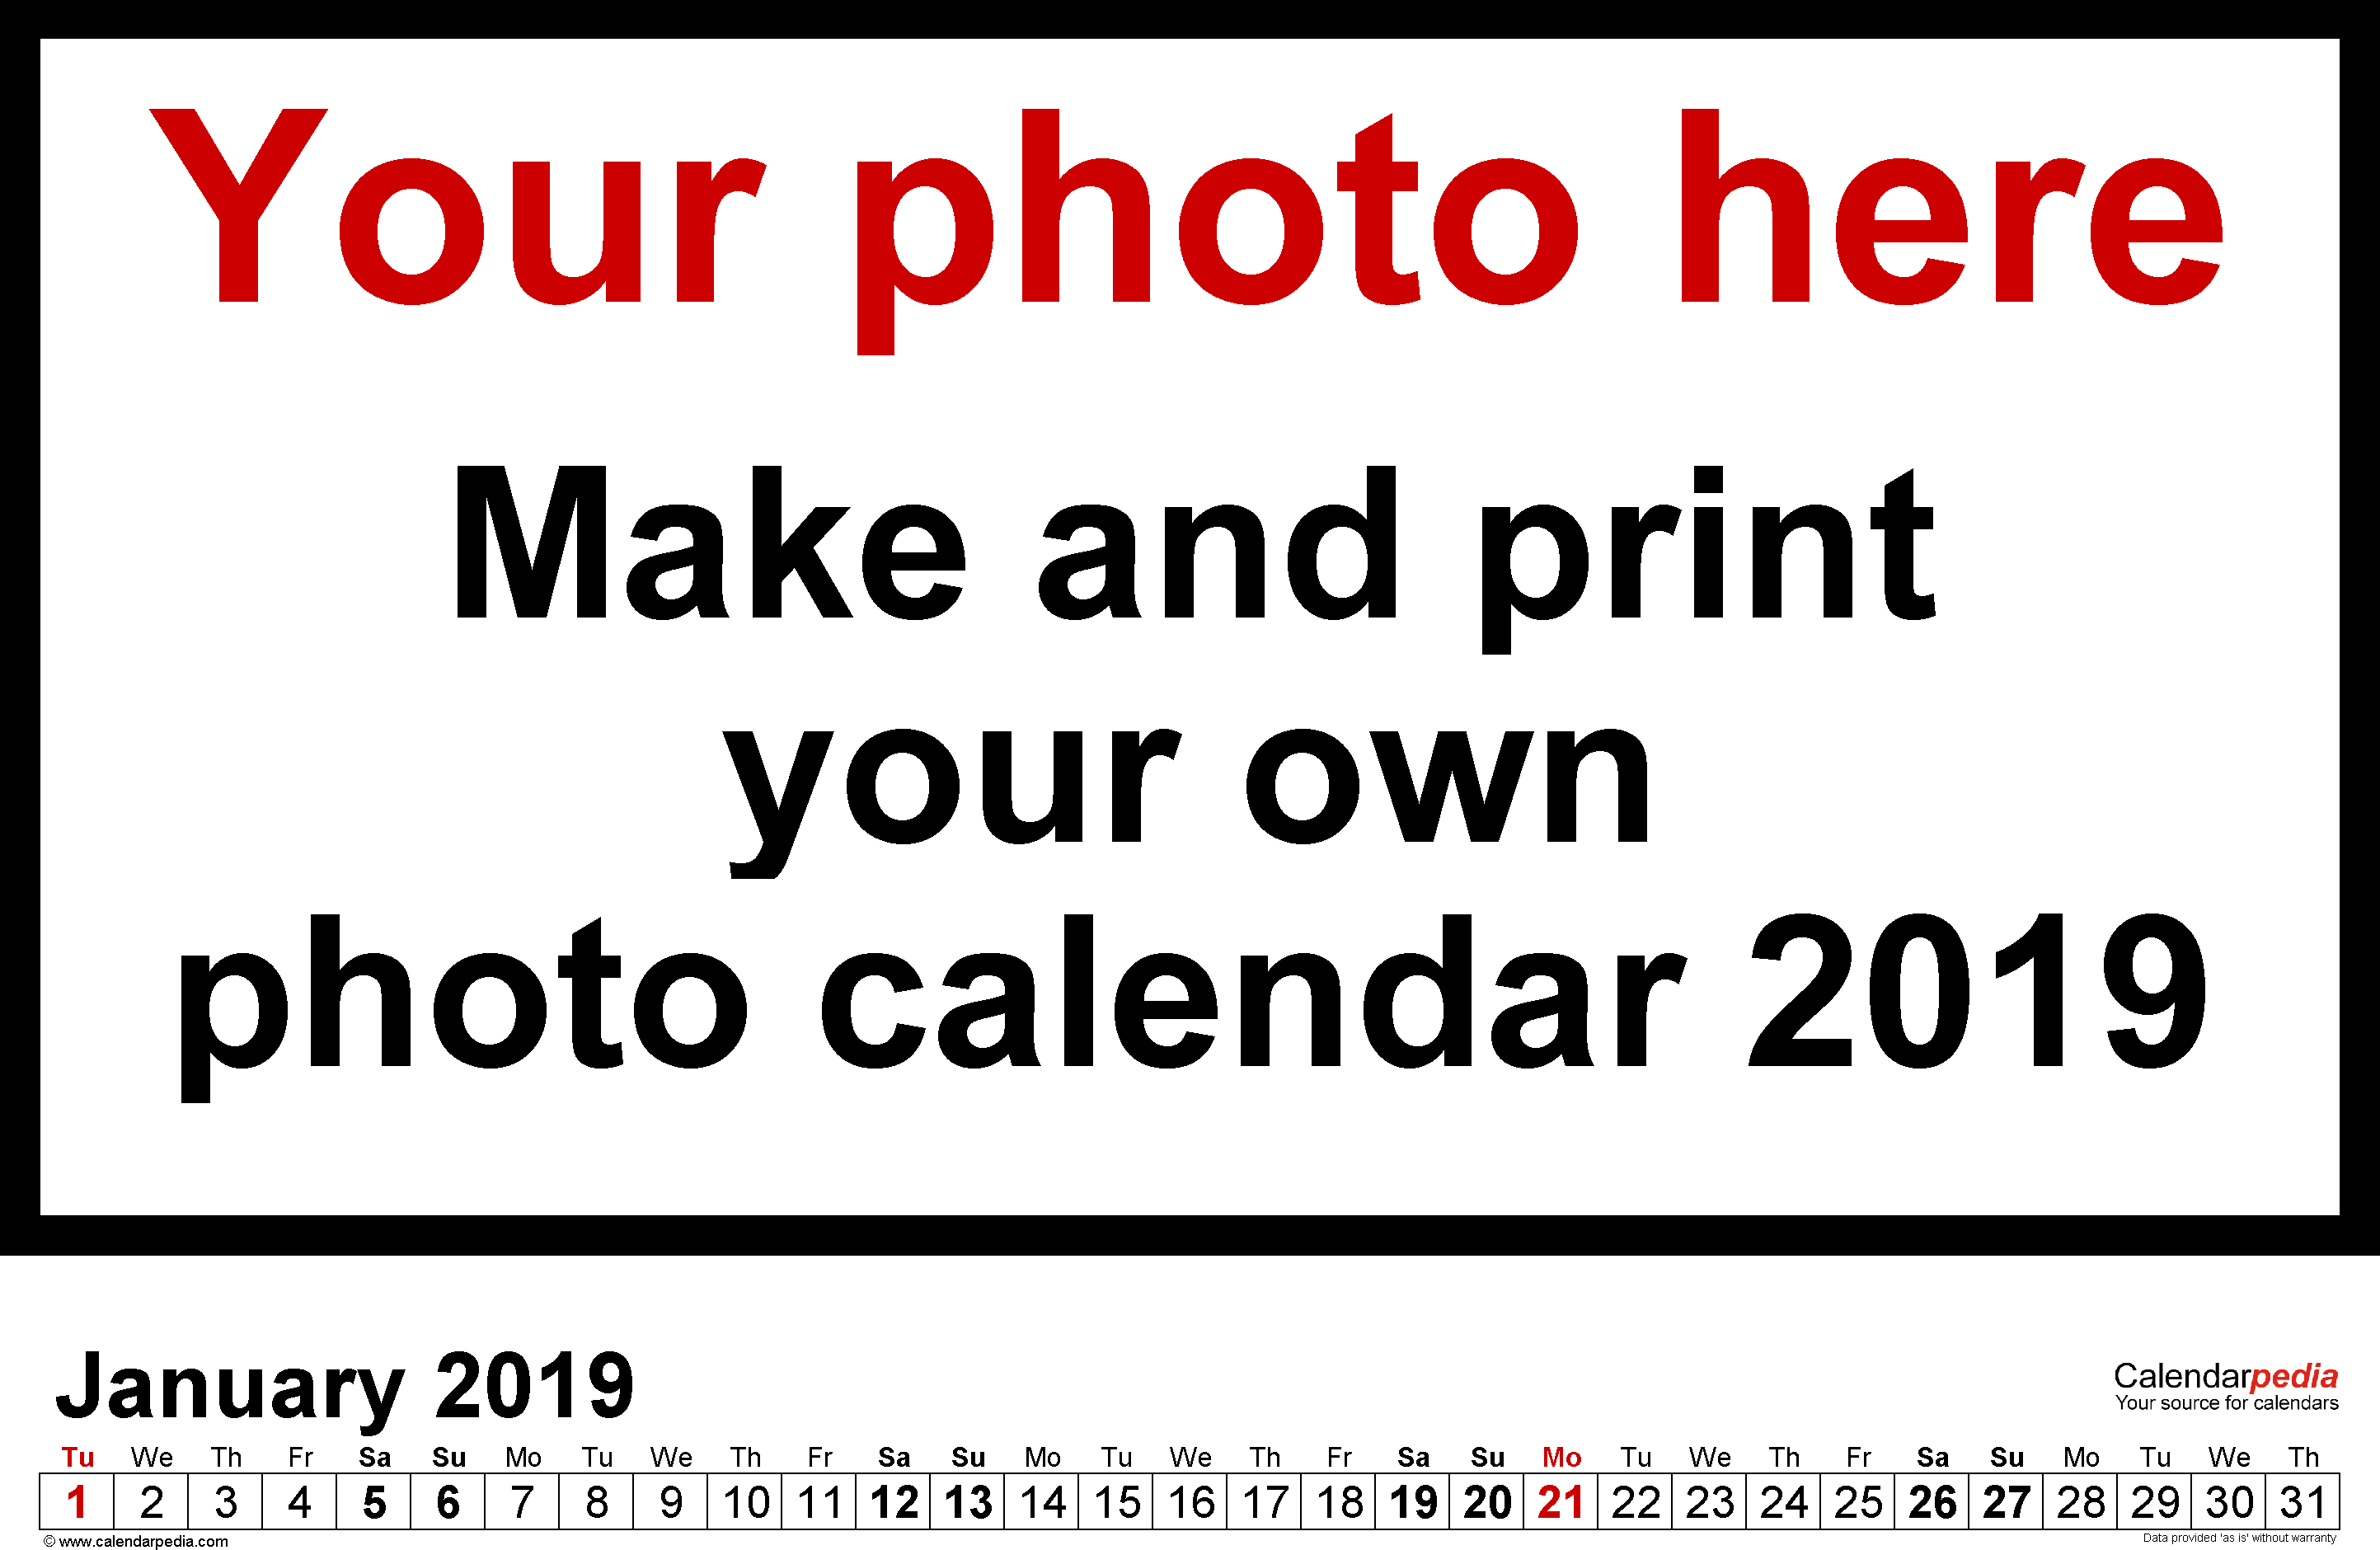 Template 5: Photo calendar 2019 for PDF, 12 pages, landscape format